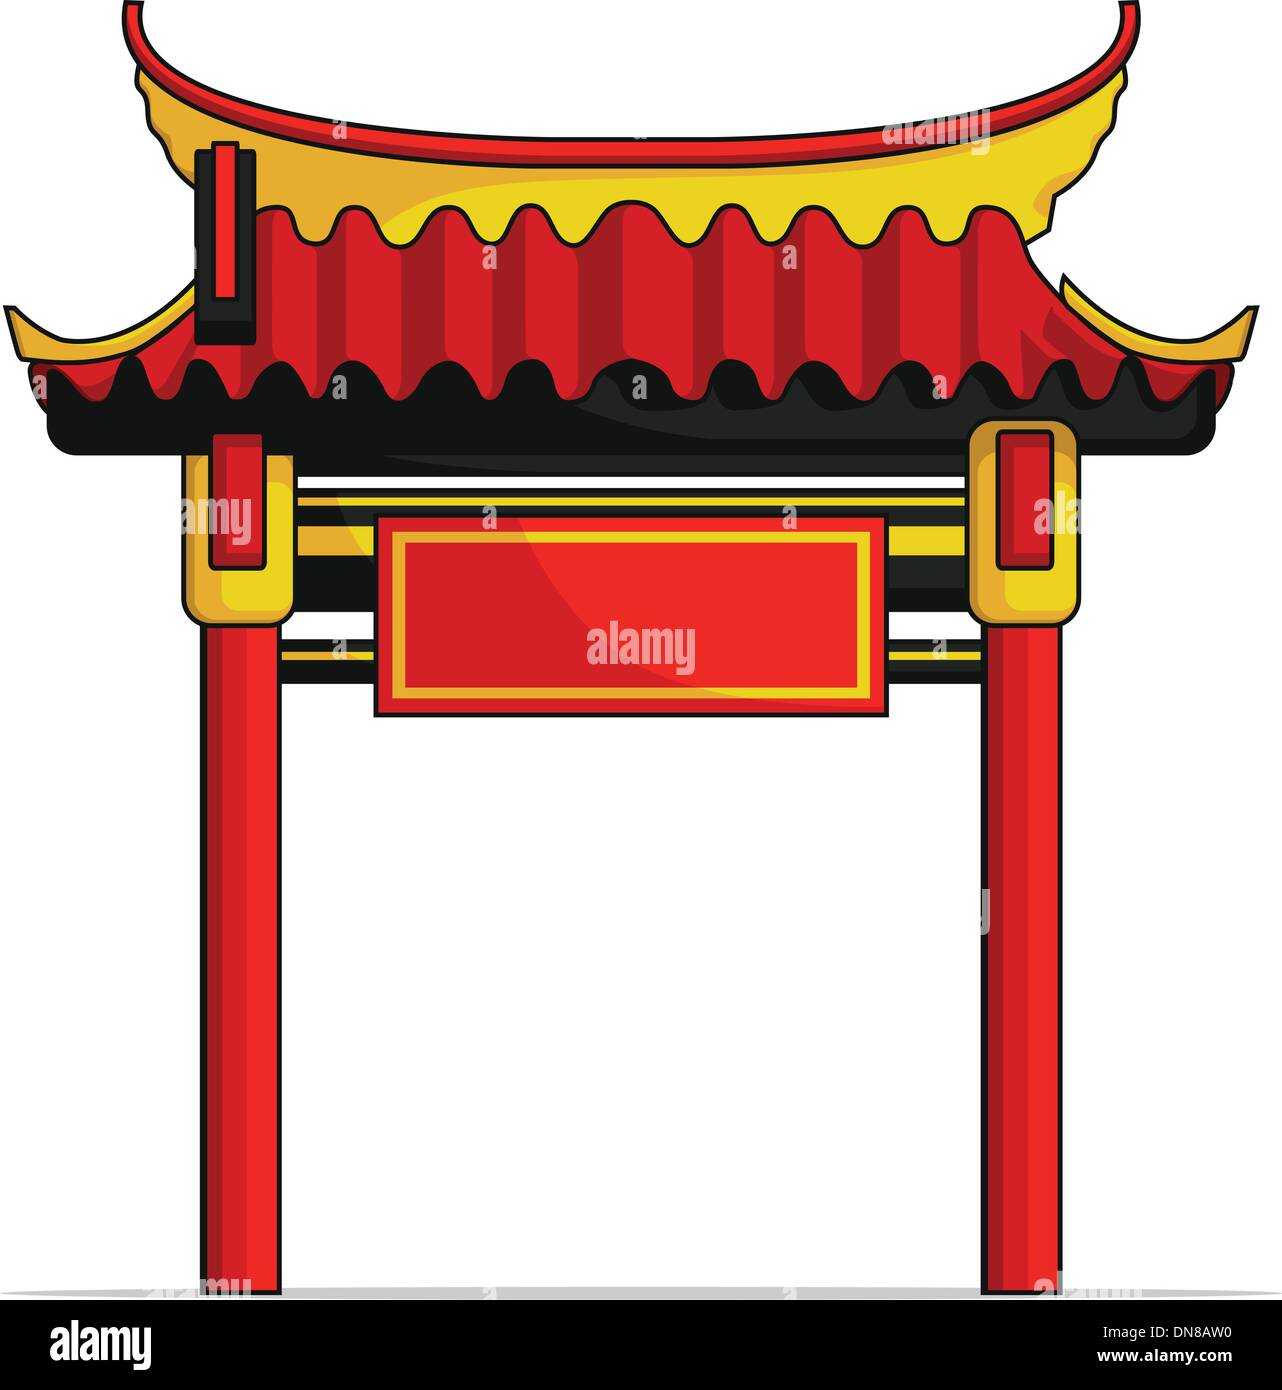 Chinese Gate - Stock Vector